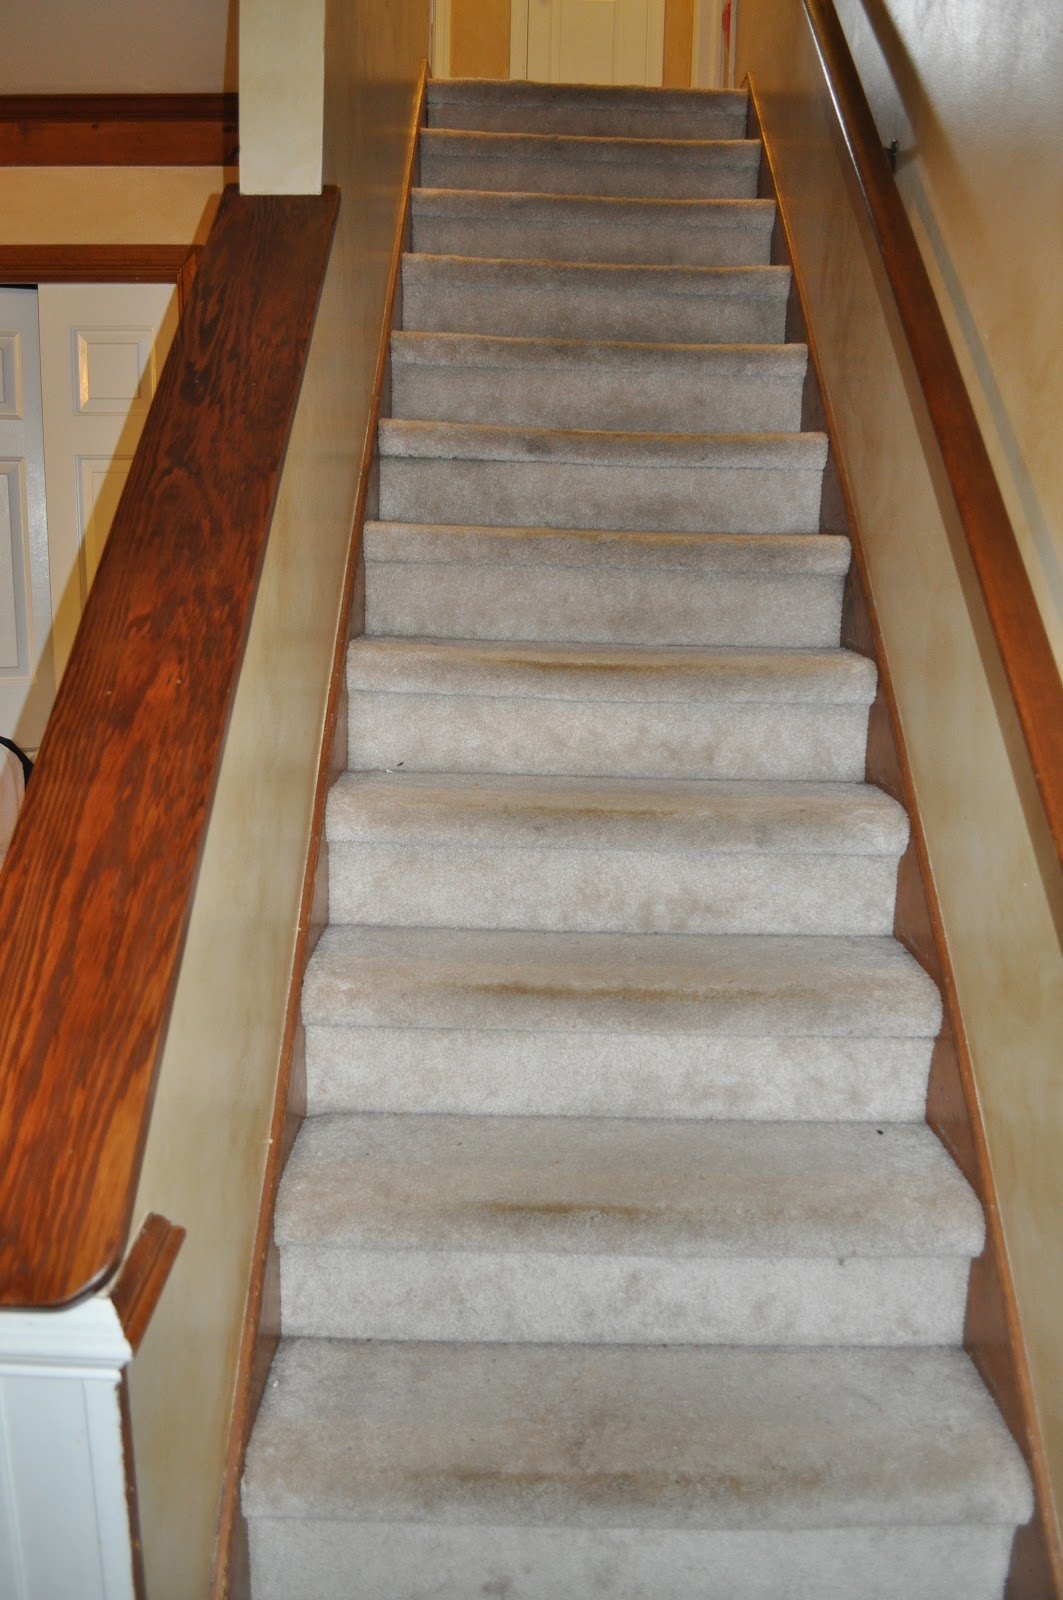 Carpet On Stairs Slippery Make Your Own Carpet Stair Treads Regarding Bullnose Stair Tread Carpets (Image 6 of 15)